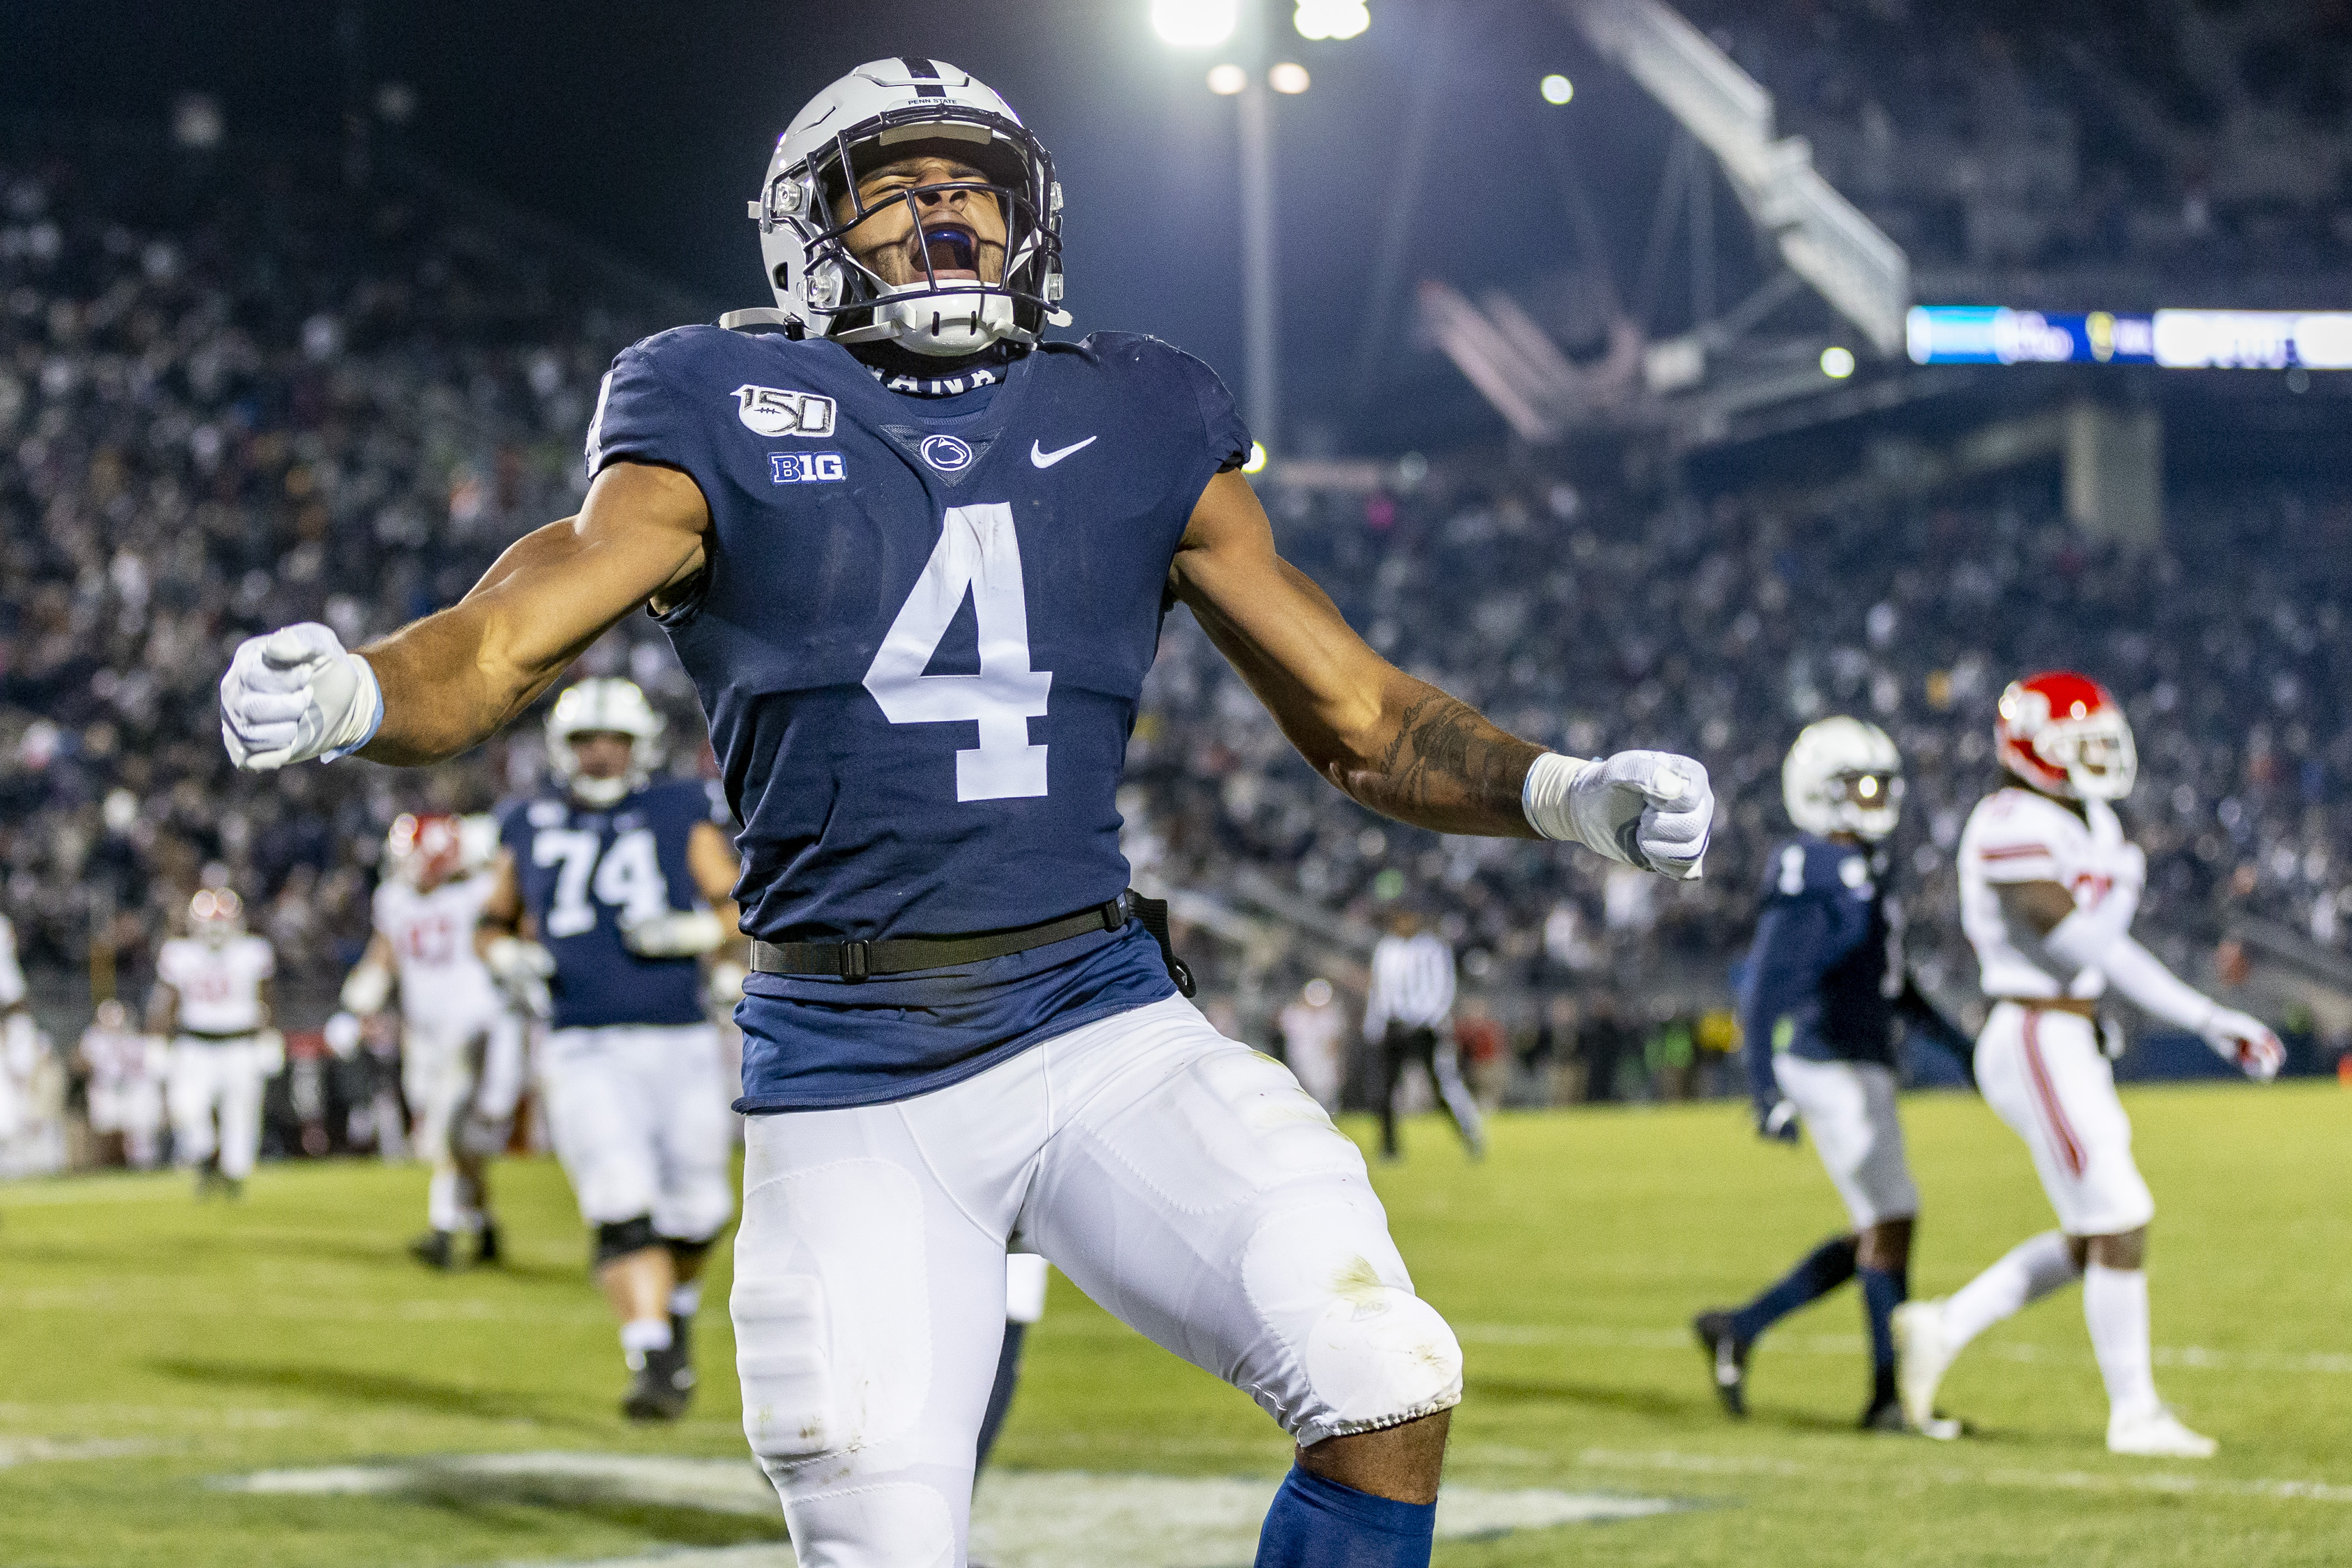 Penn State and James Franklin agree to a contract extension that will run through 2025; new terms not yet released